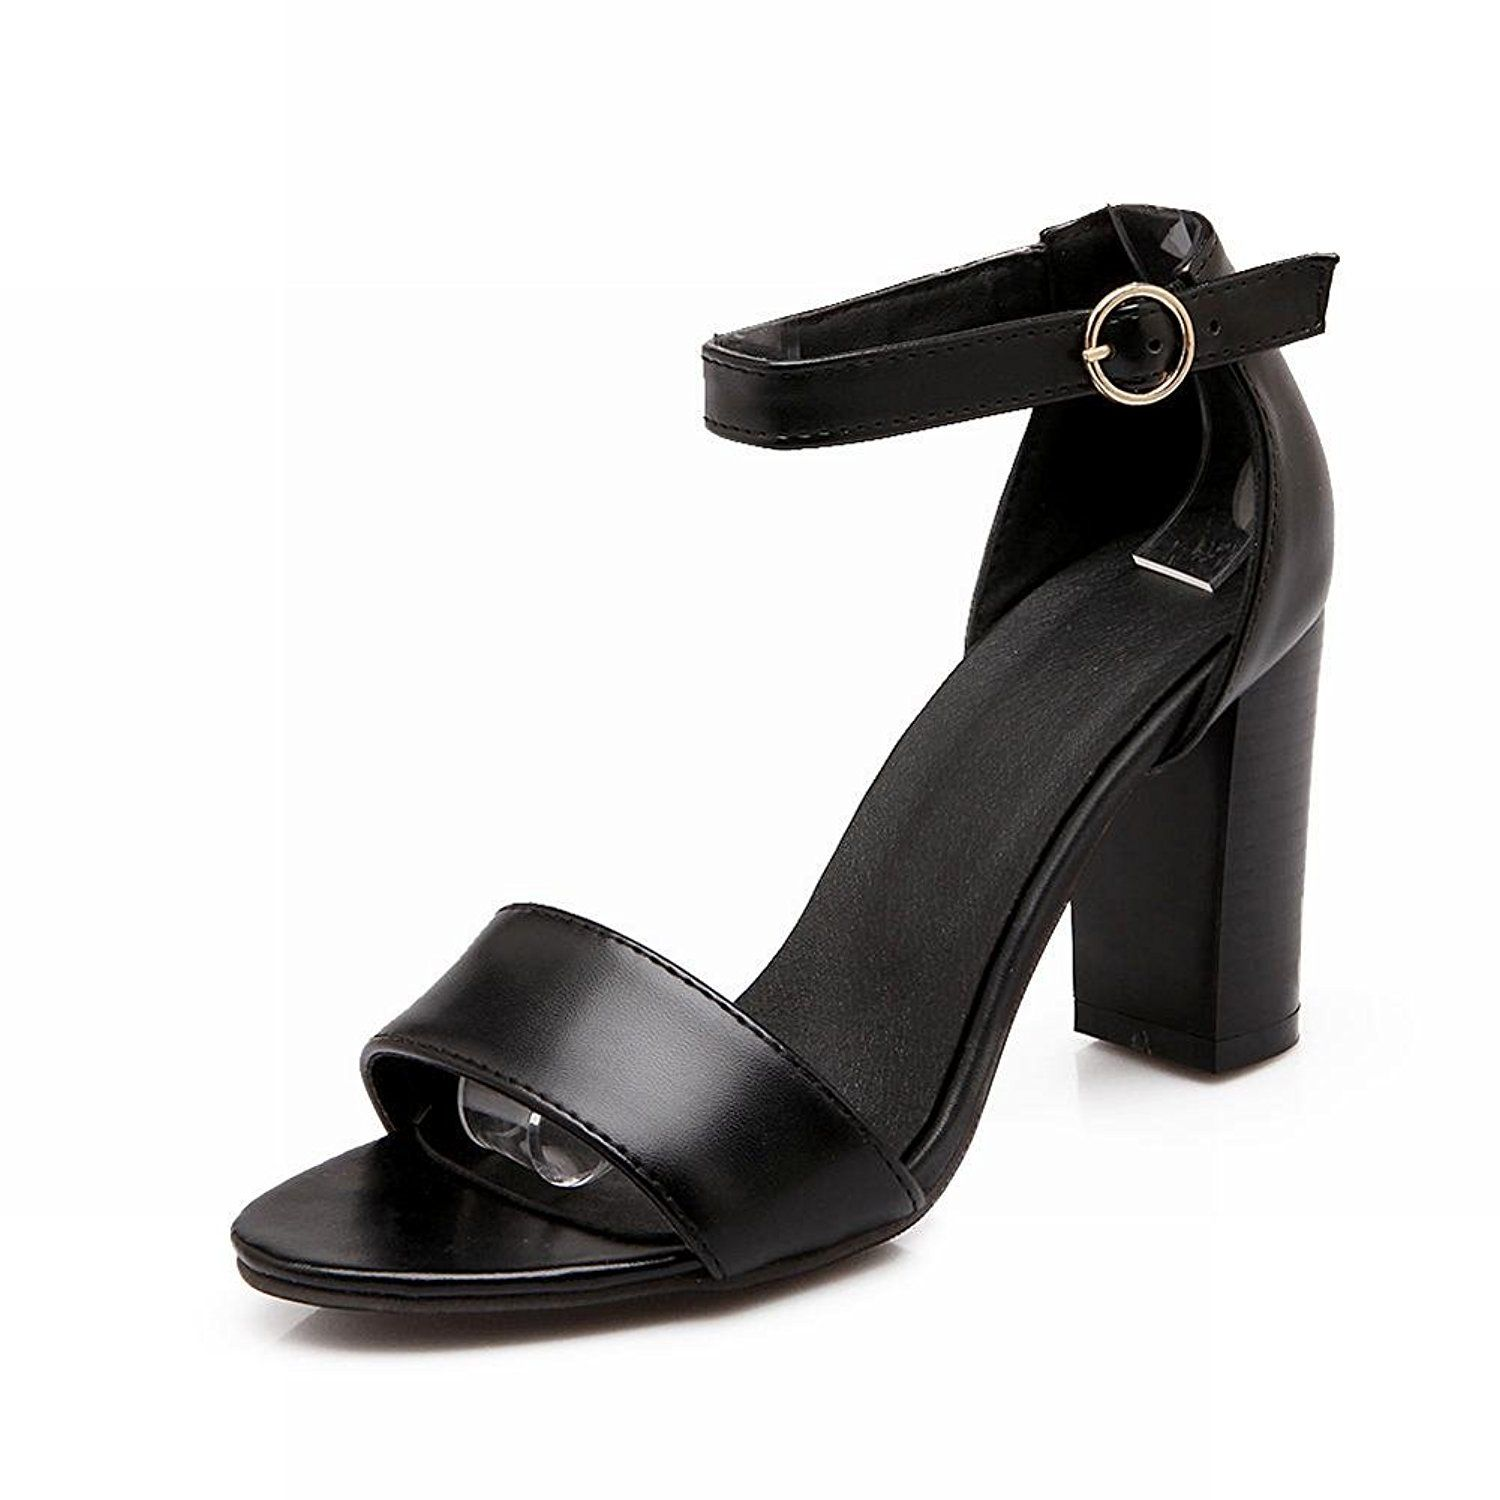 Carol Shoes Women's Fashion Elegance Ankle-strap Grace Chunky High Heel Sandals *** Details can be found by clicking on the image.